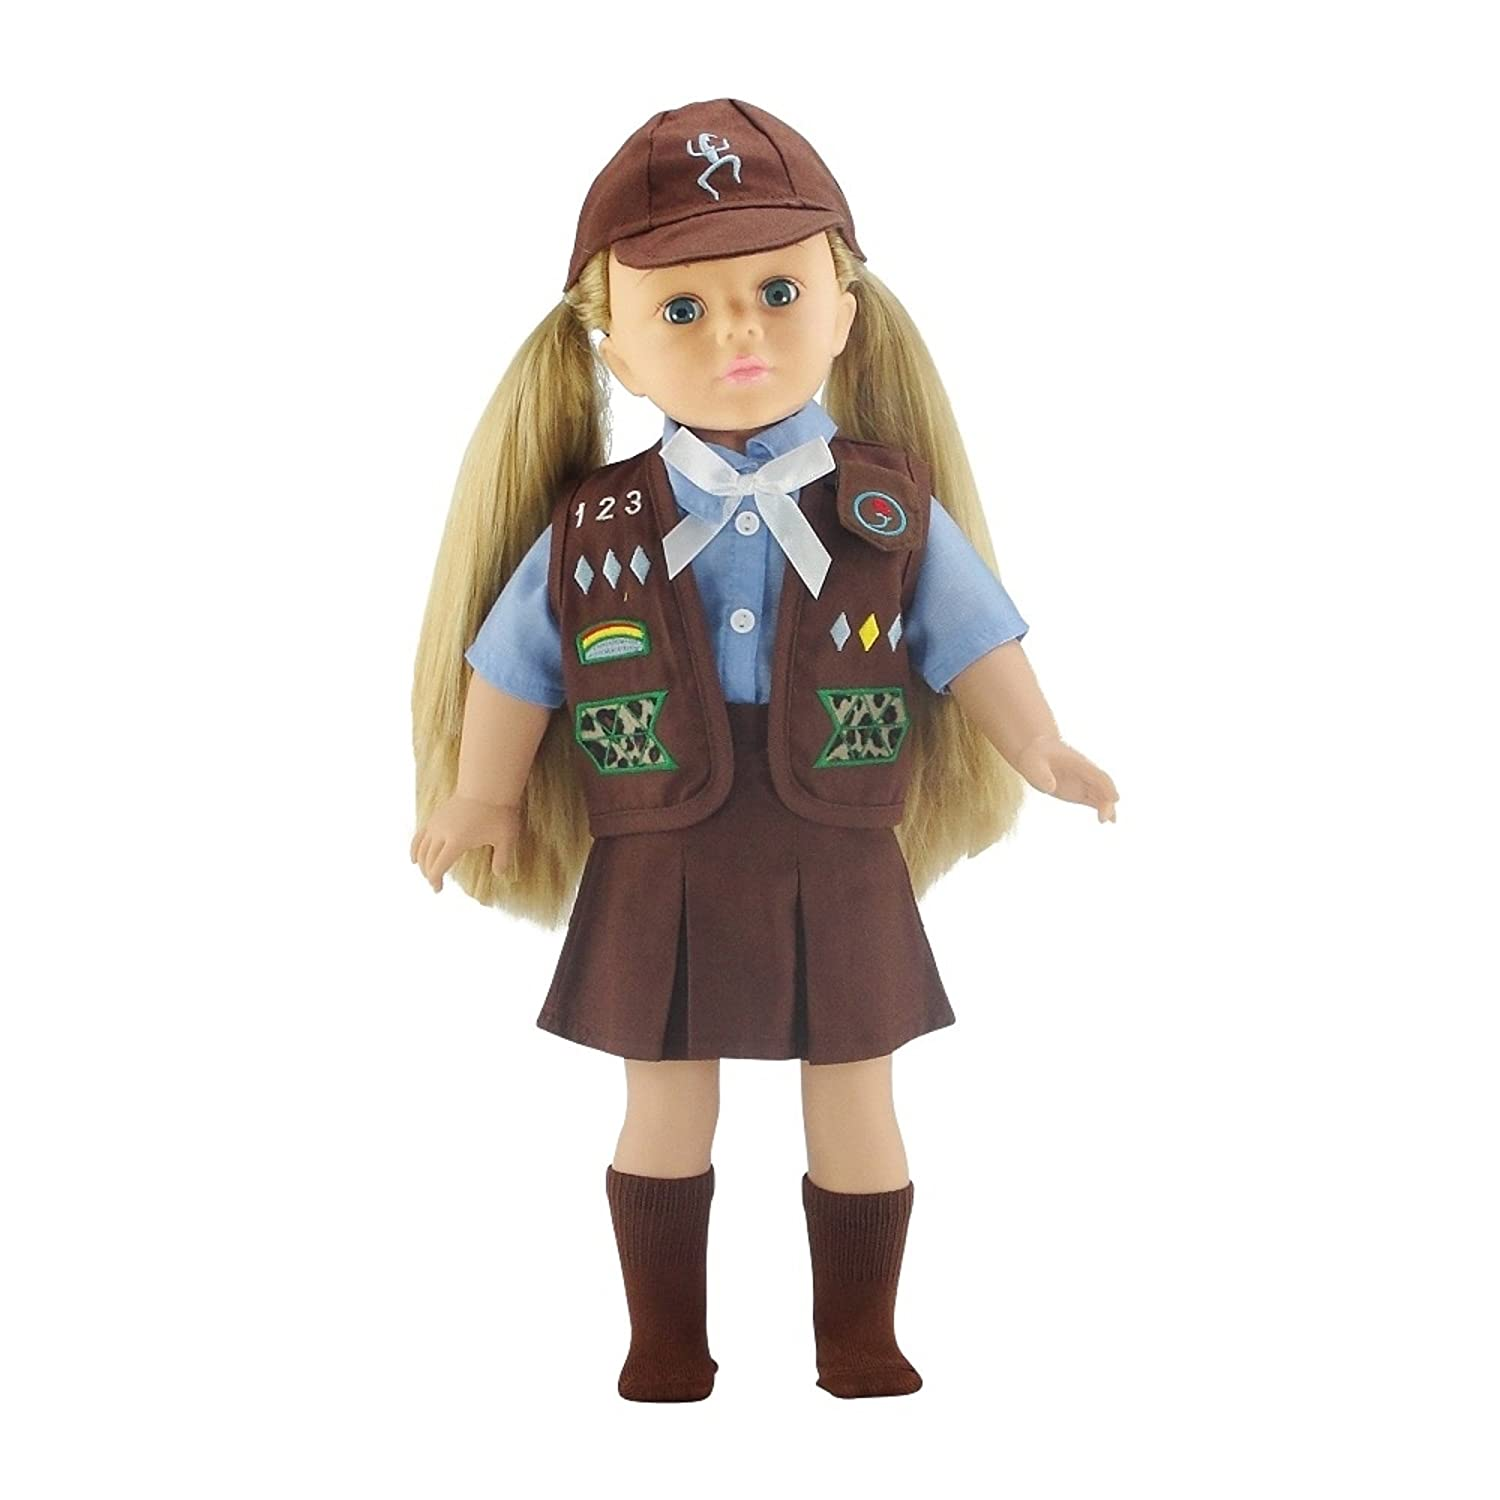 18 Inch Doll Clothes Like Brownie Girl's Club Outfit | Fits 18 American Girl Dolls | Gift-boxed! by Emily Rose Doll Clothes